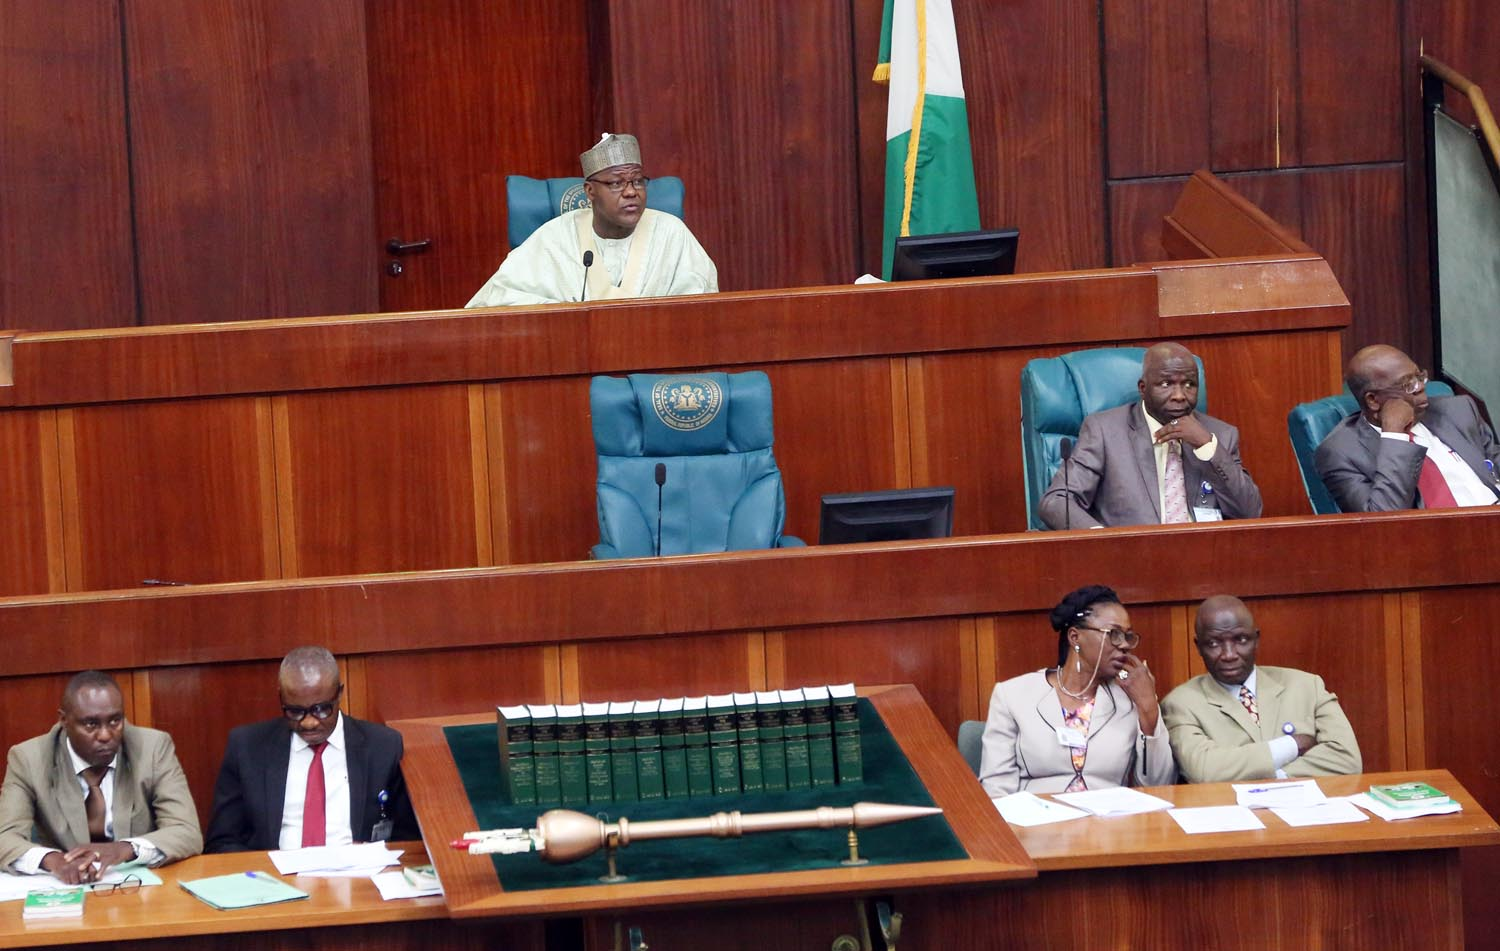 Plenary proceedings at the House of Representatives on Thursday, February 8, 2017